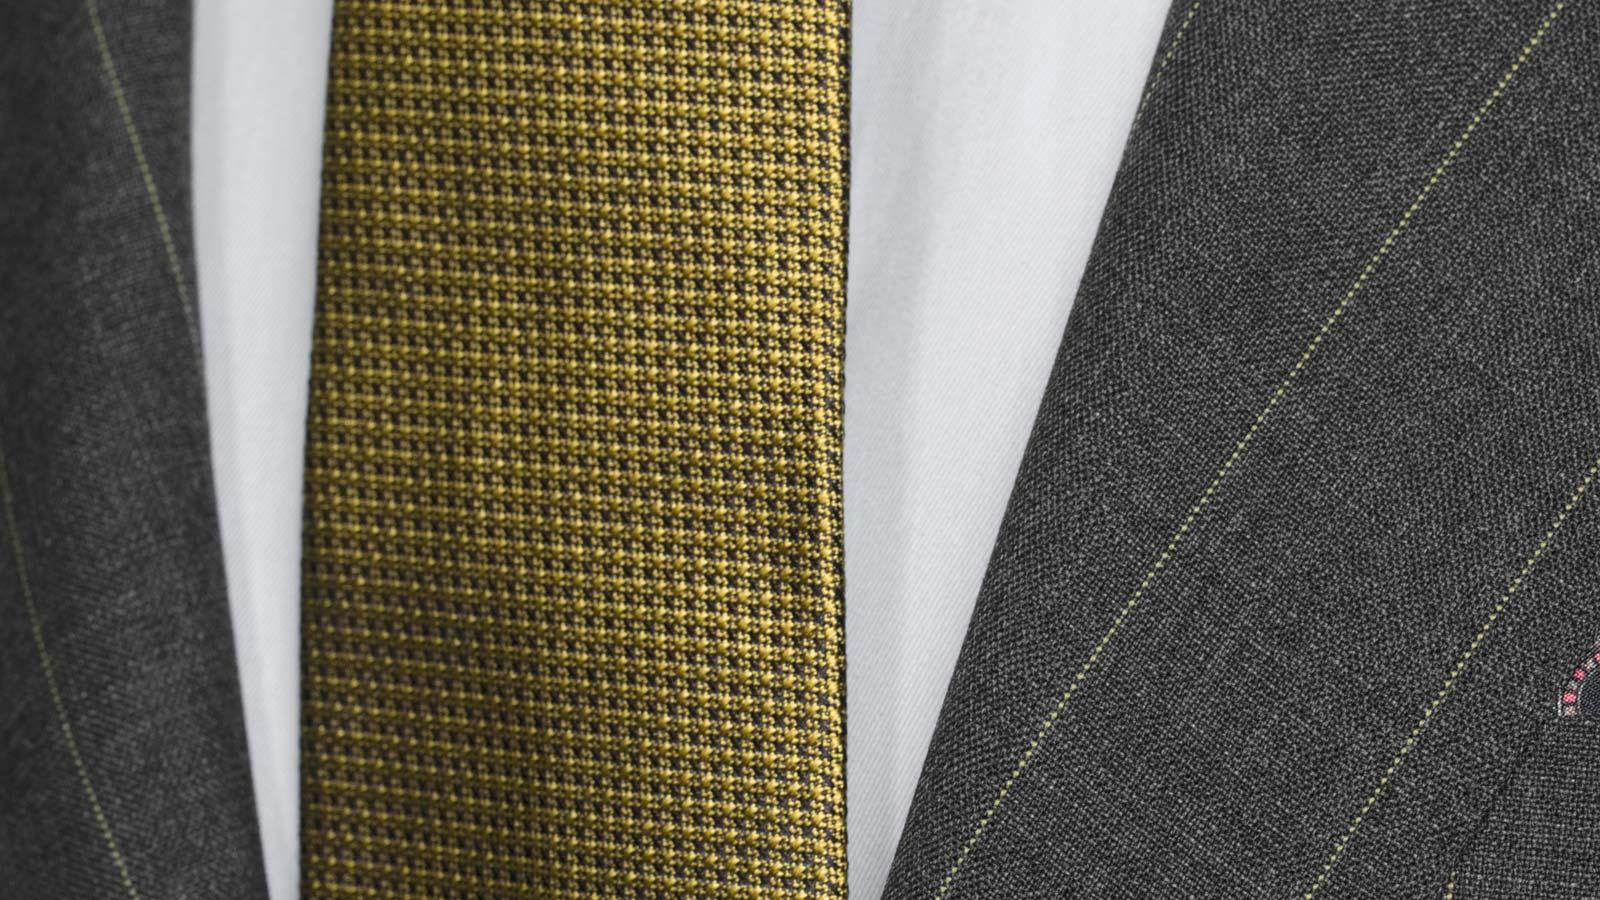 Tropical Rustic Yellow Stripe Grey Suit - slider image 1